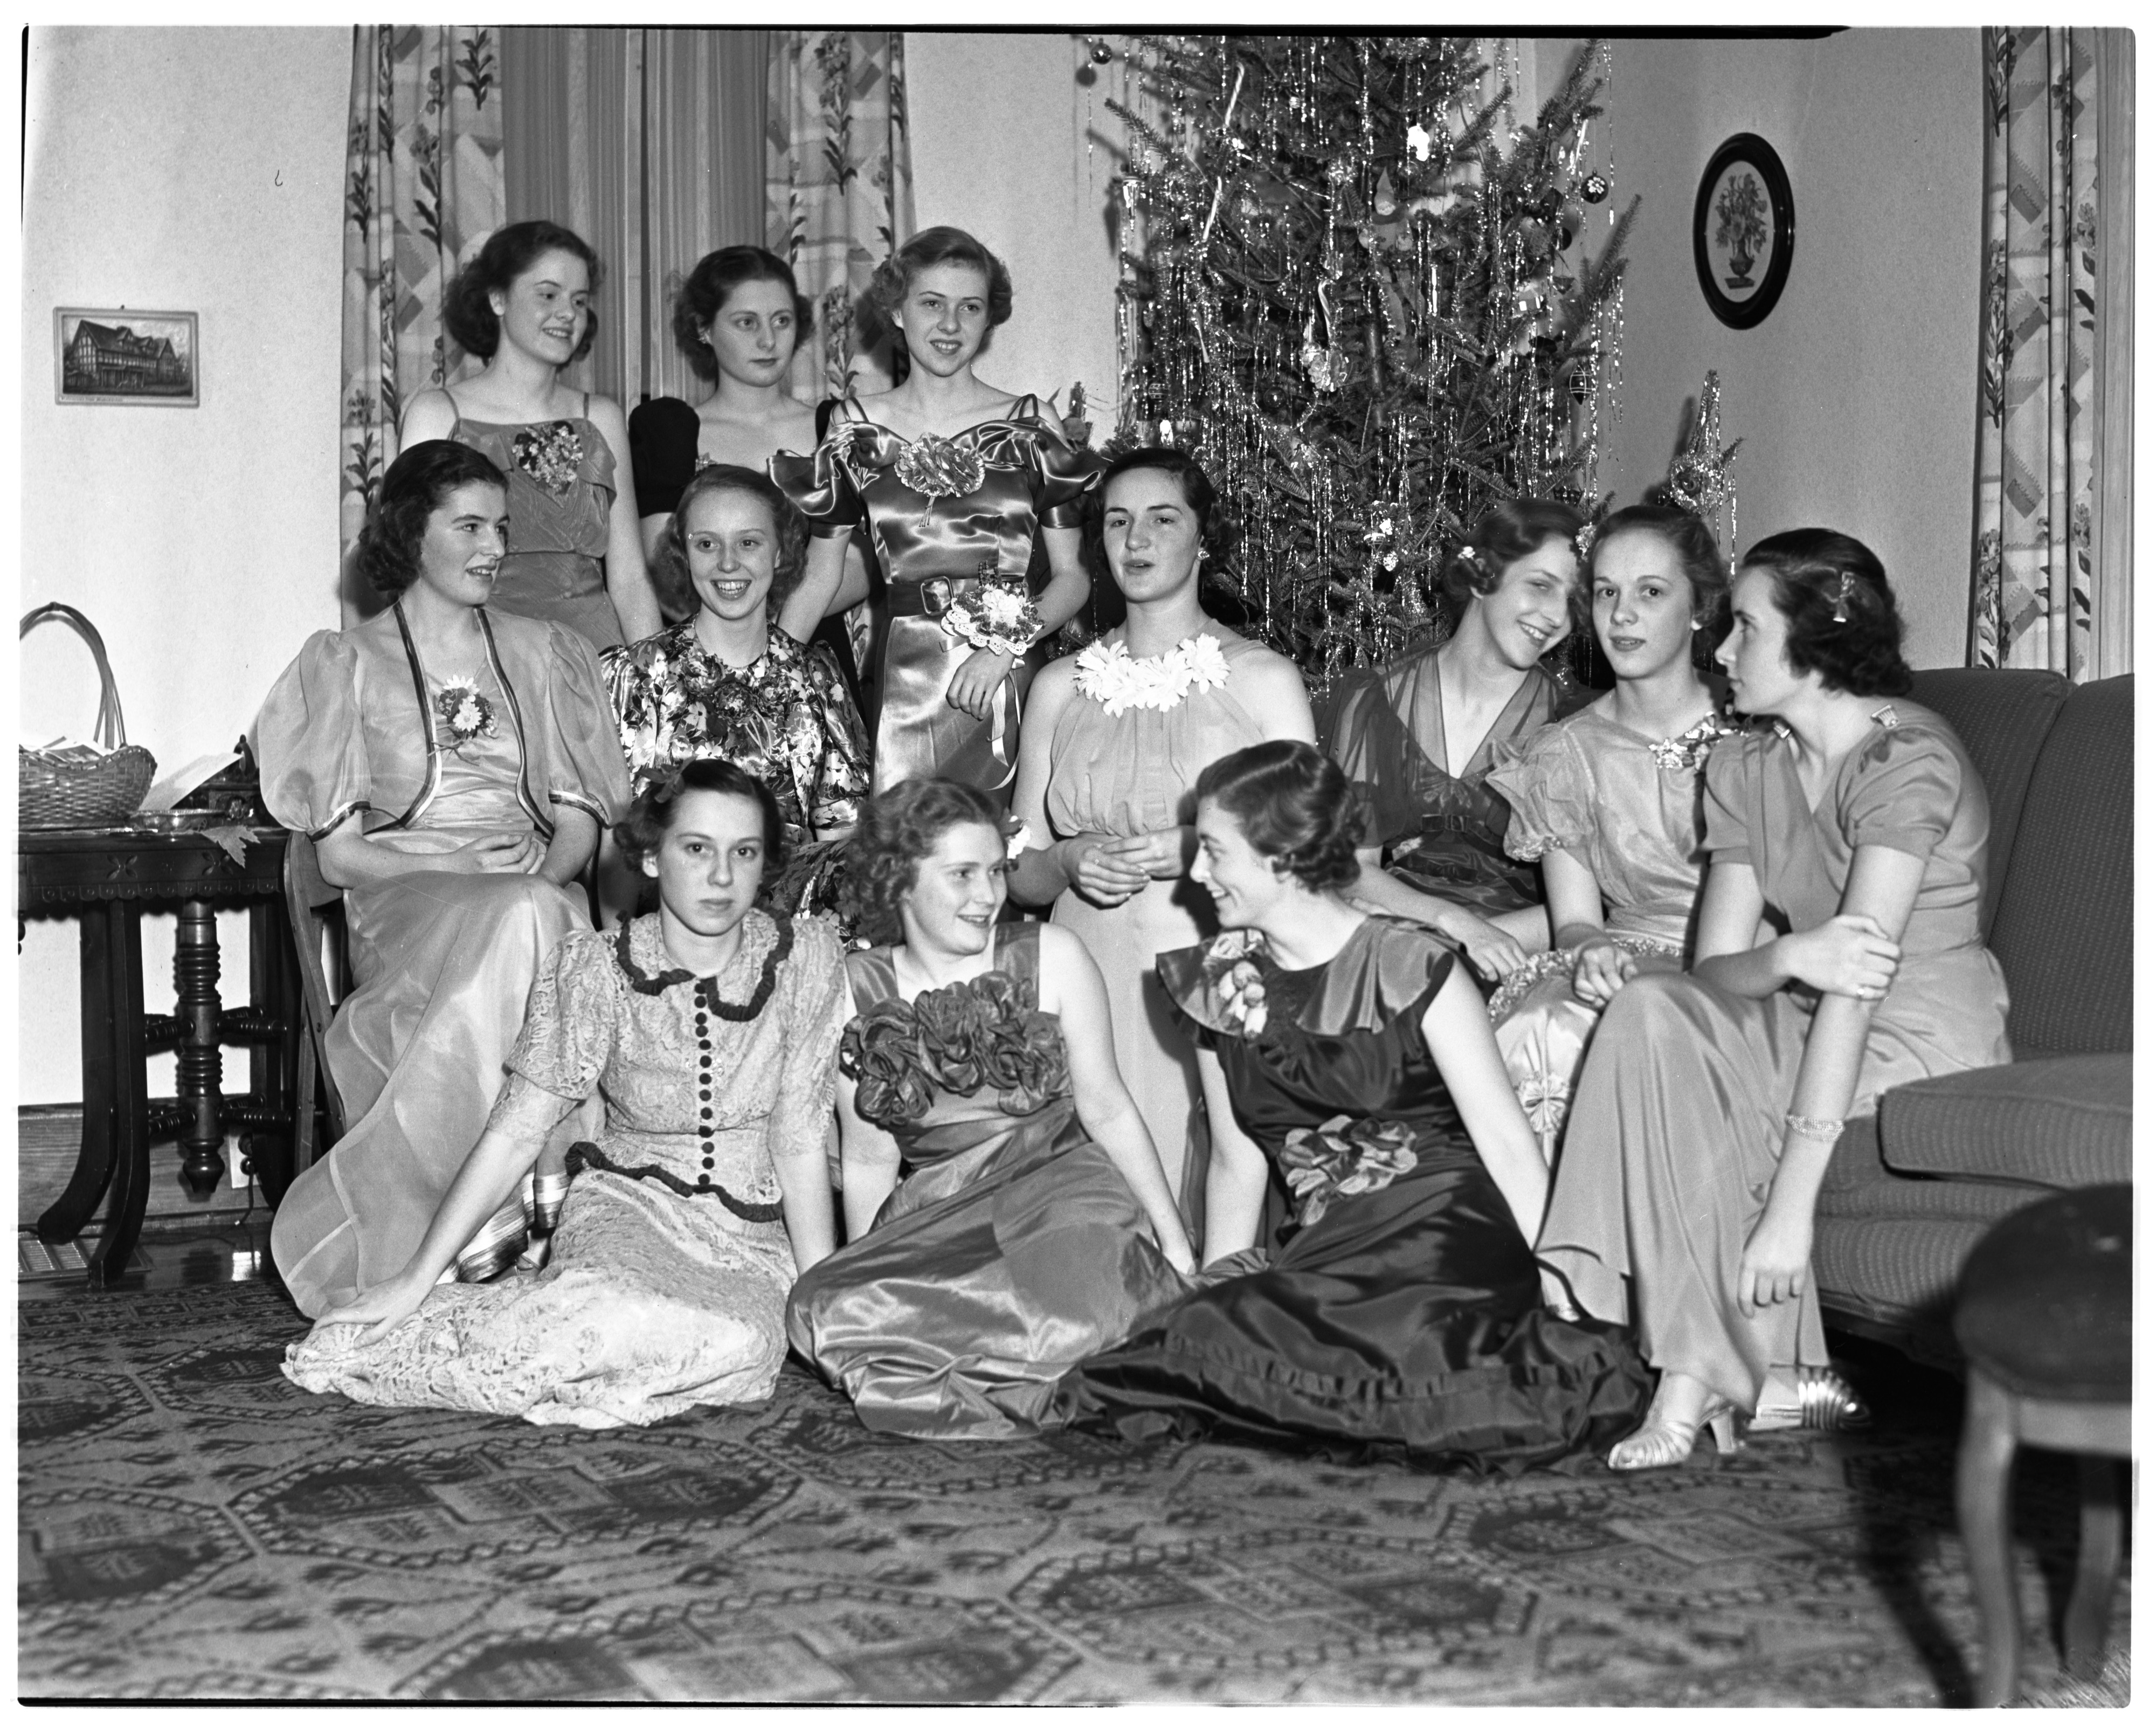 Phi Kappa Sigma Christmas Party, December 1936 image